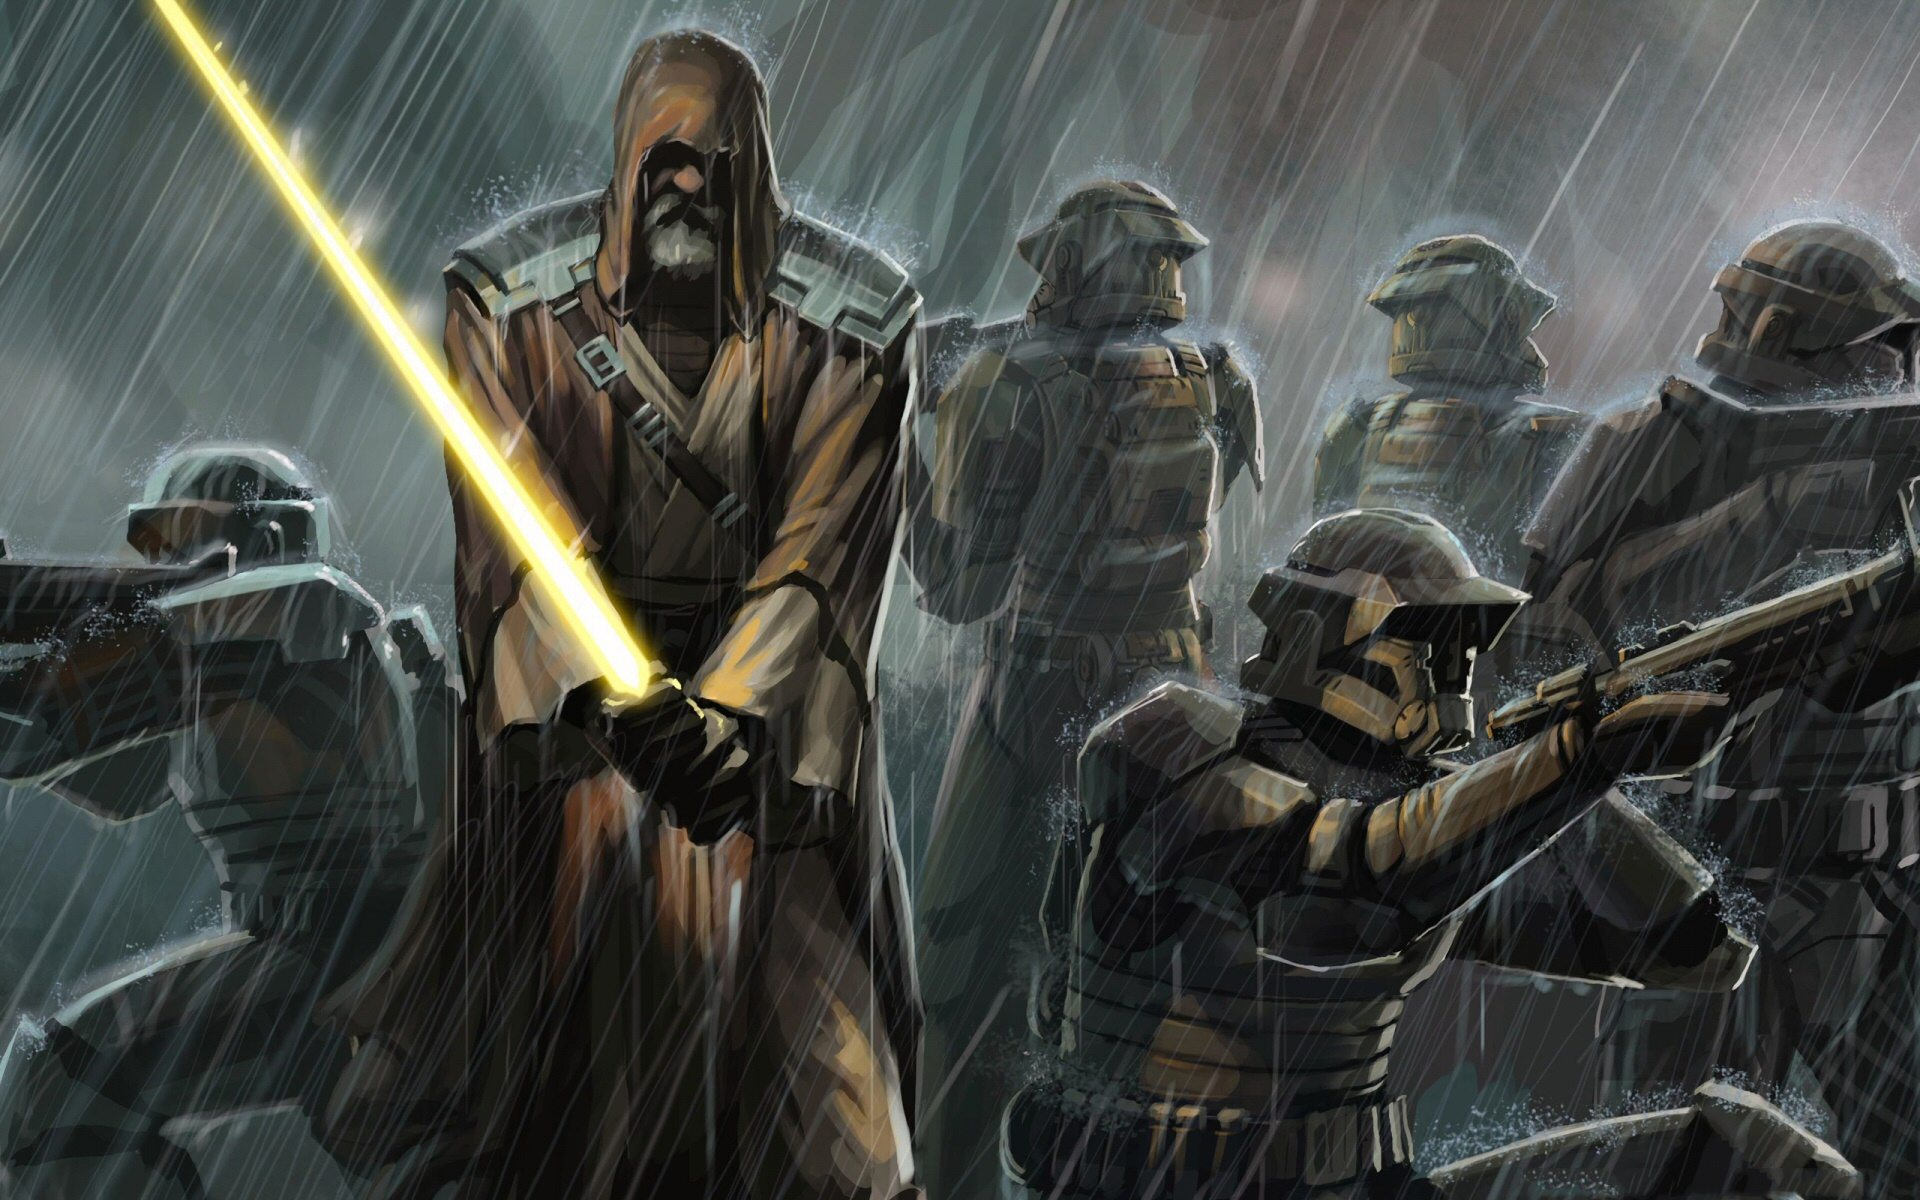 Star Wars Wallpaper jedi sword clones rain 1920x1200